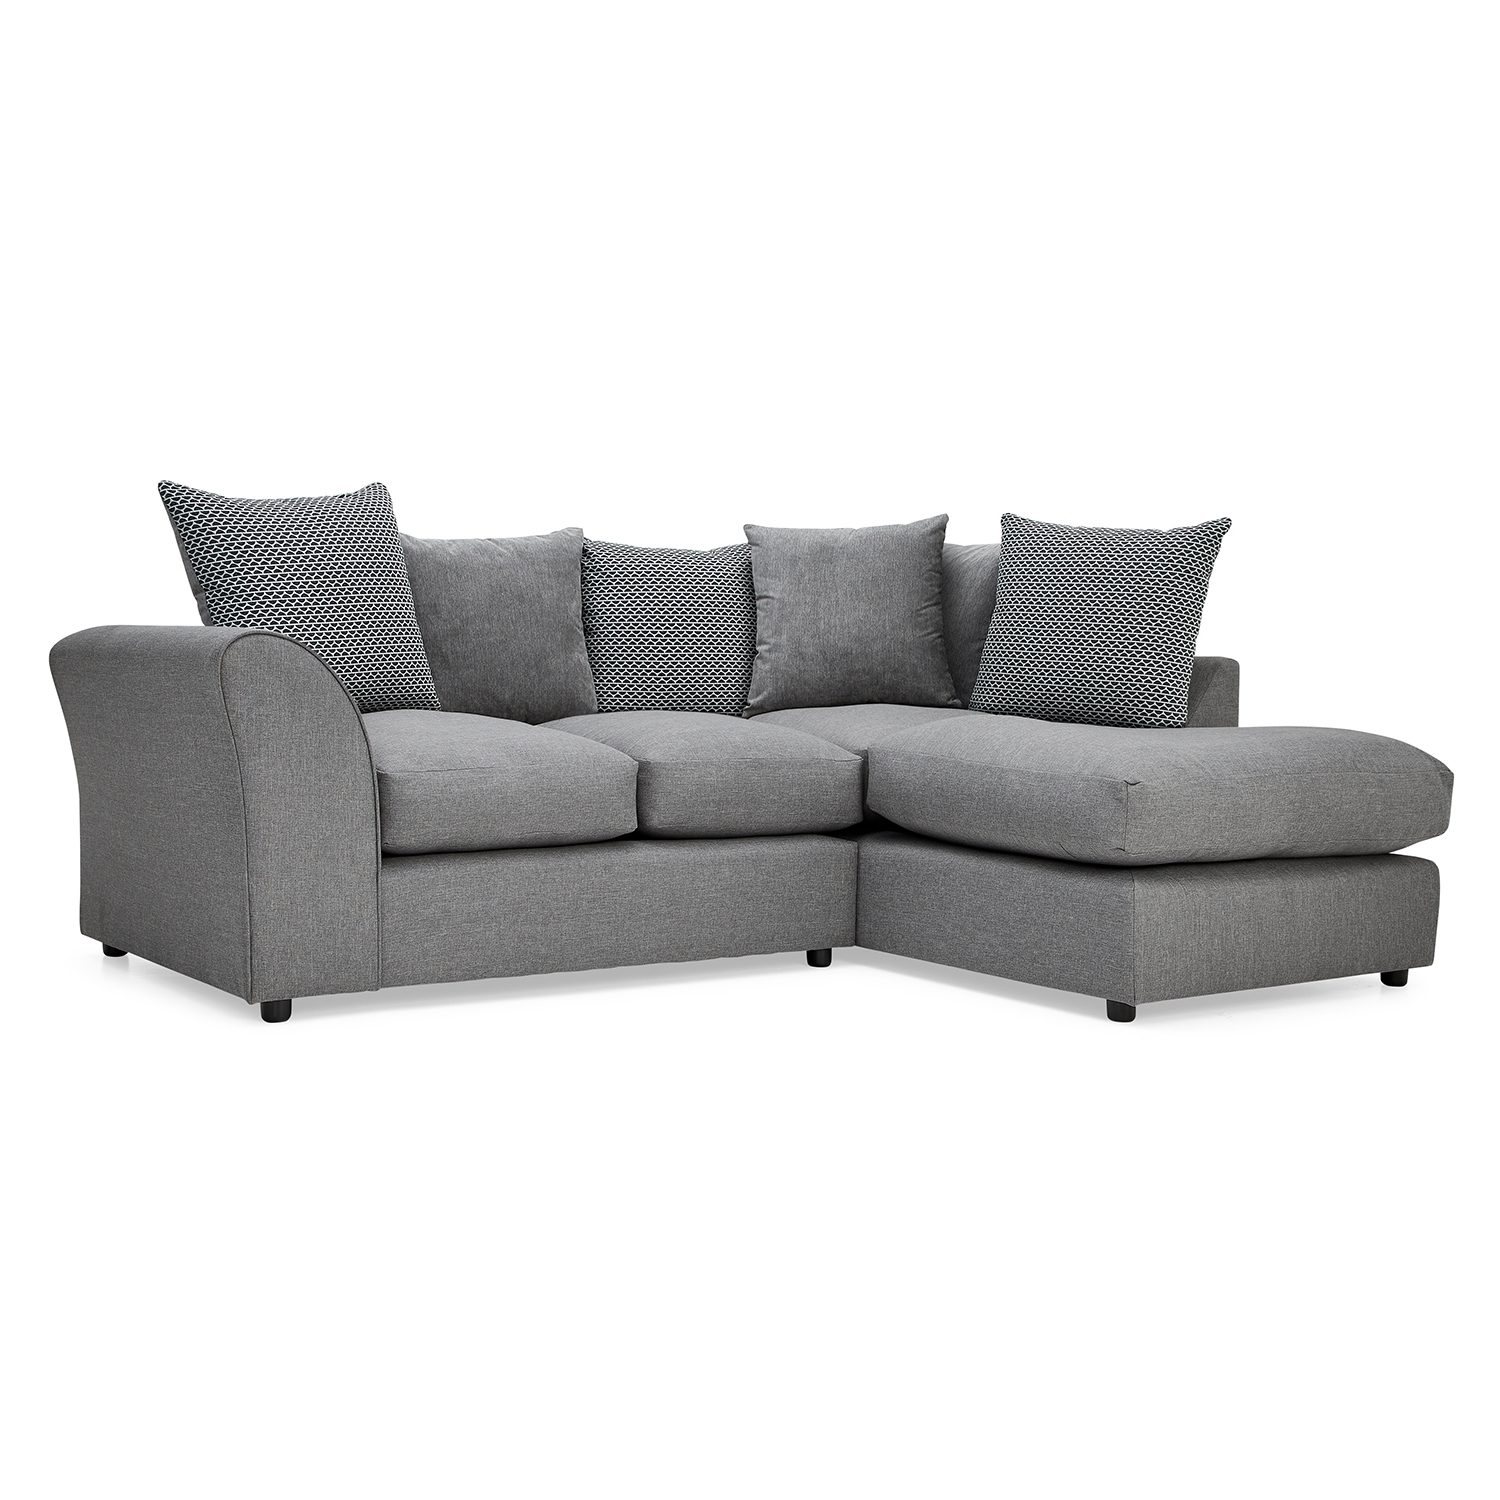 Well Known Fabric Corner Sofas Regarding Seattle Fabric Corner Sofa – Next Day Delivery Seattle Fabric (View 18 of 20)